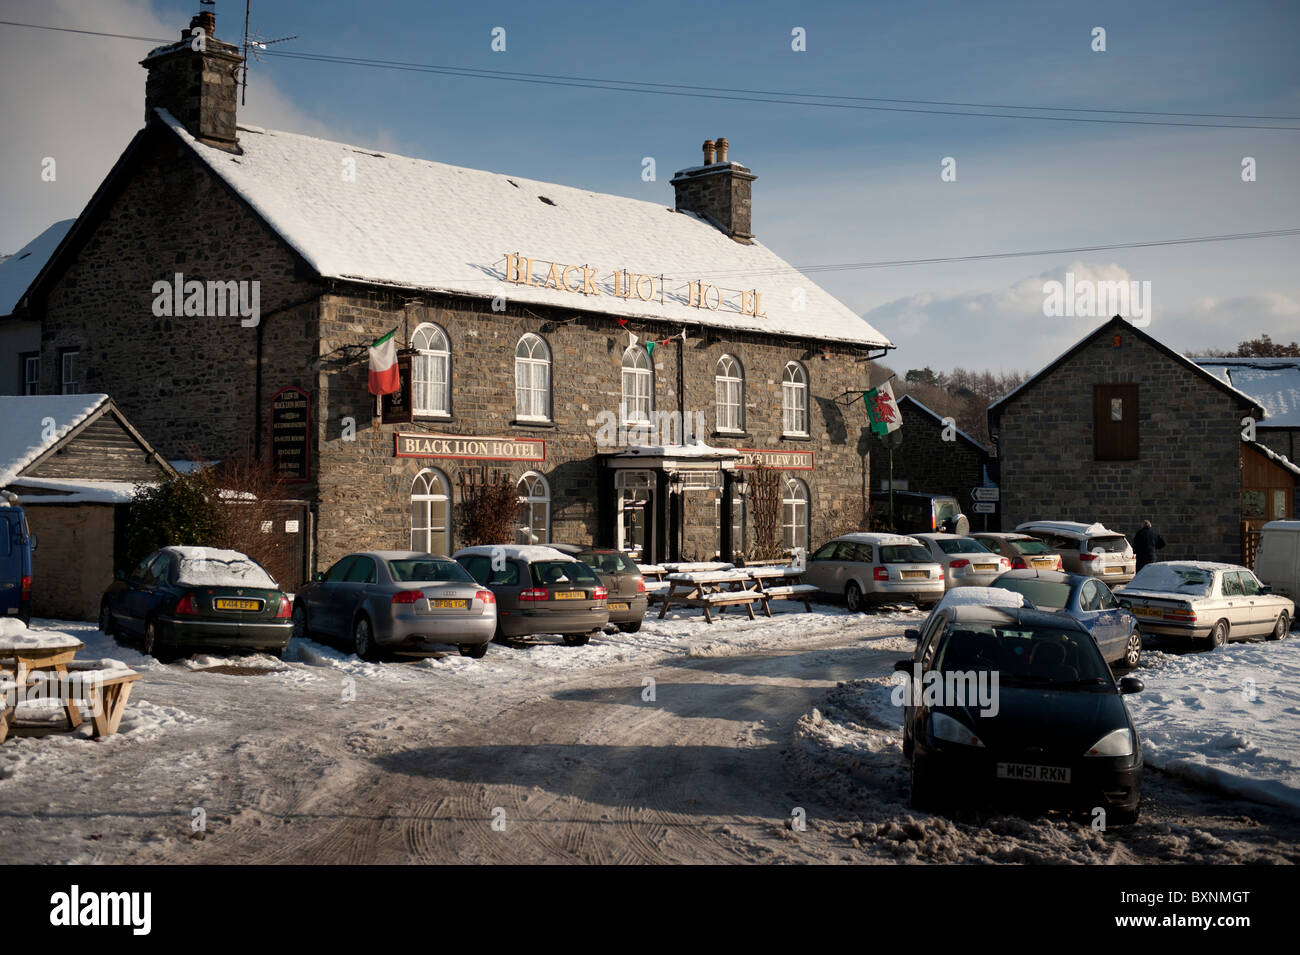 The Old Black Lion pub in the snow, Talybont, Ceredigion Wales UK - Stock Image